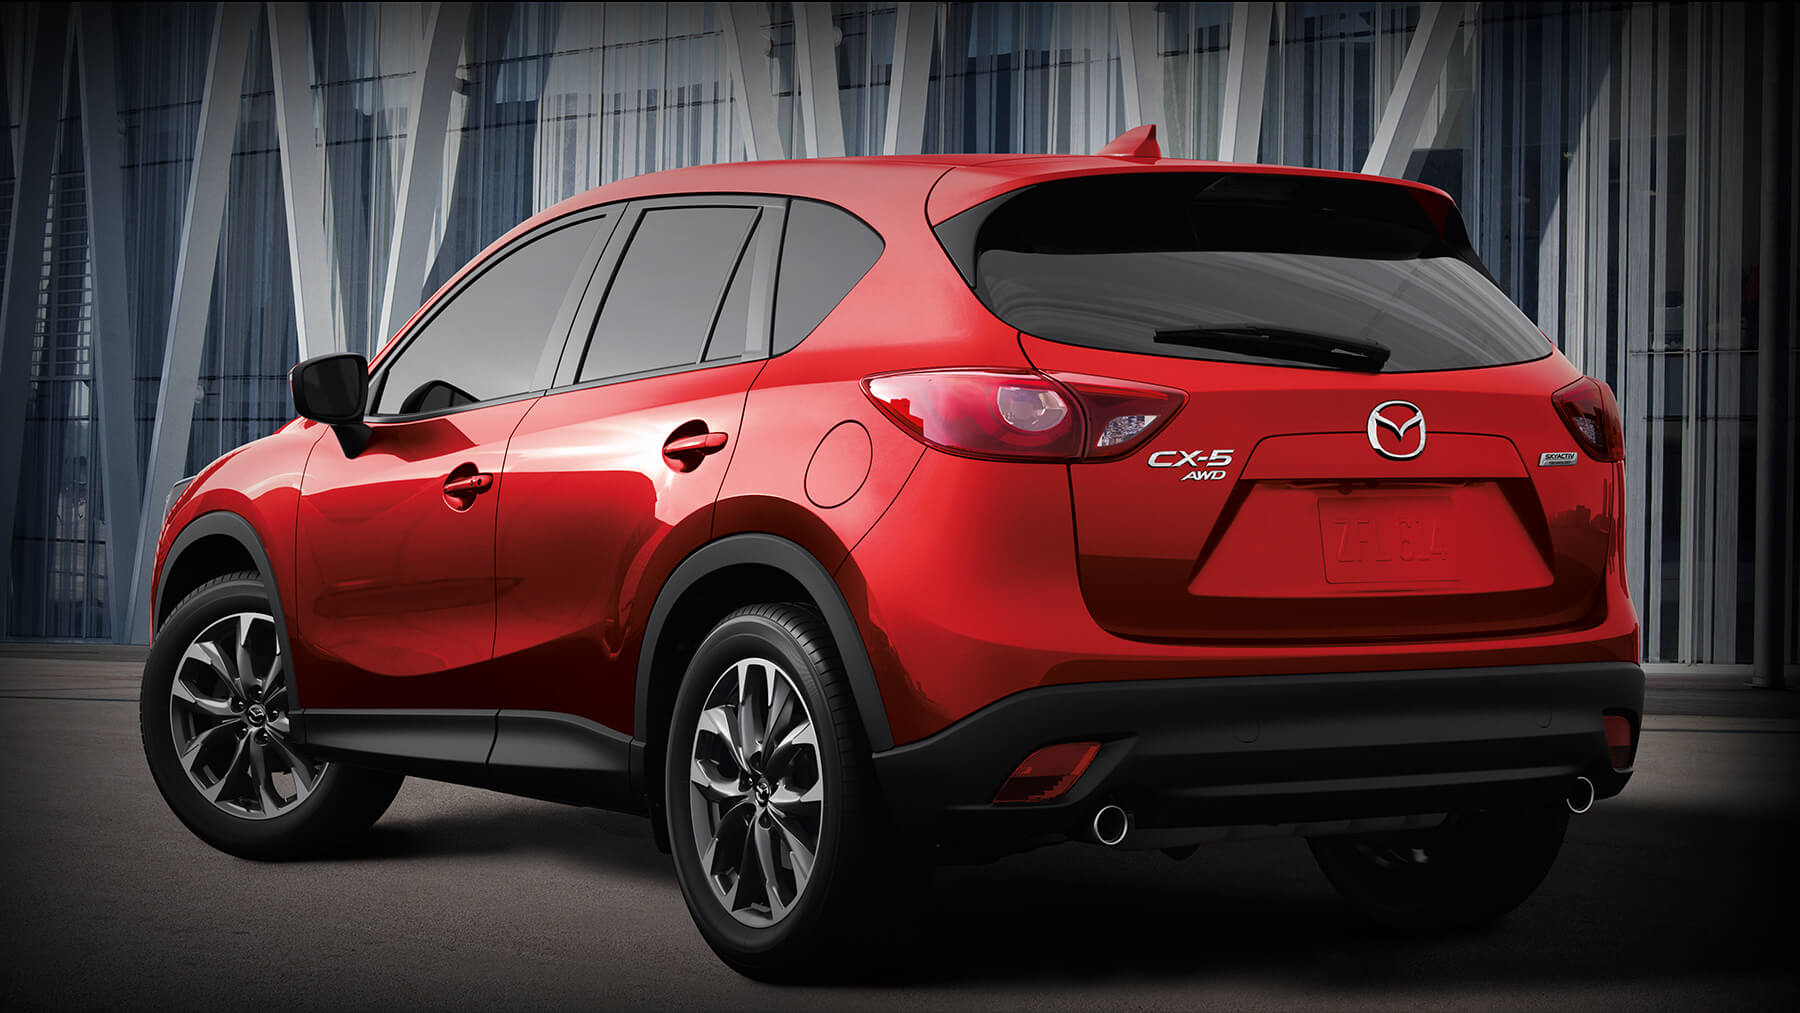 2016 mazda cx 5 photos informations articles. Black Bedroom Furniture Sets. Home Design Ideas